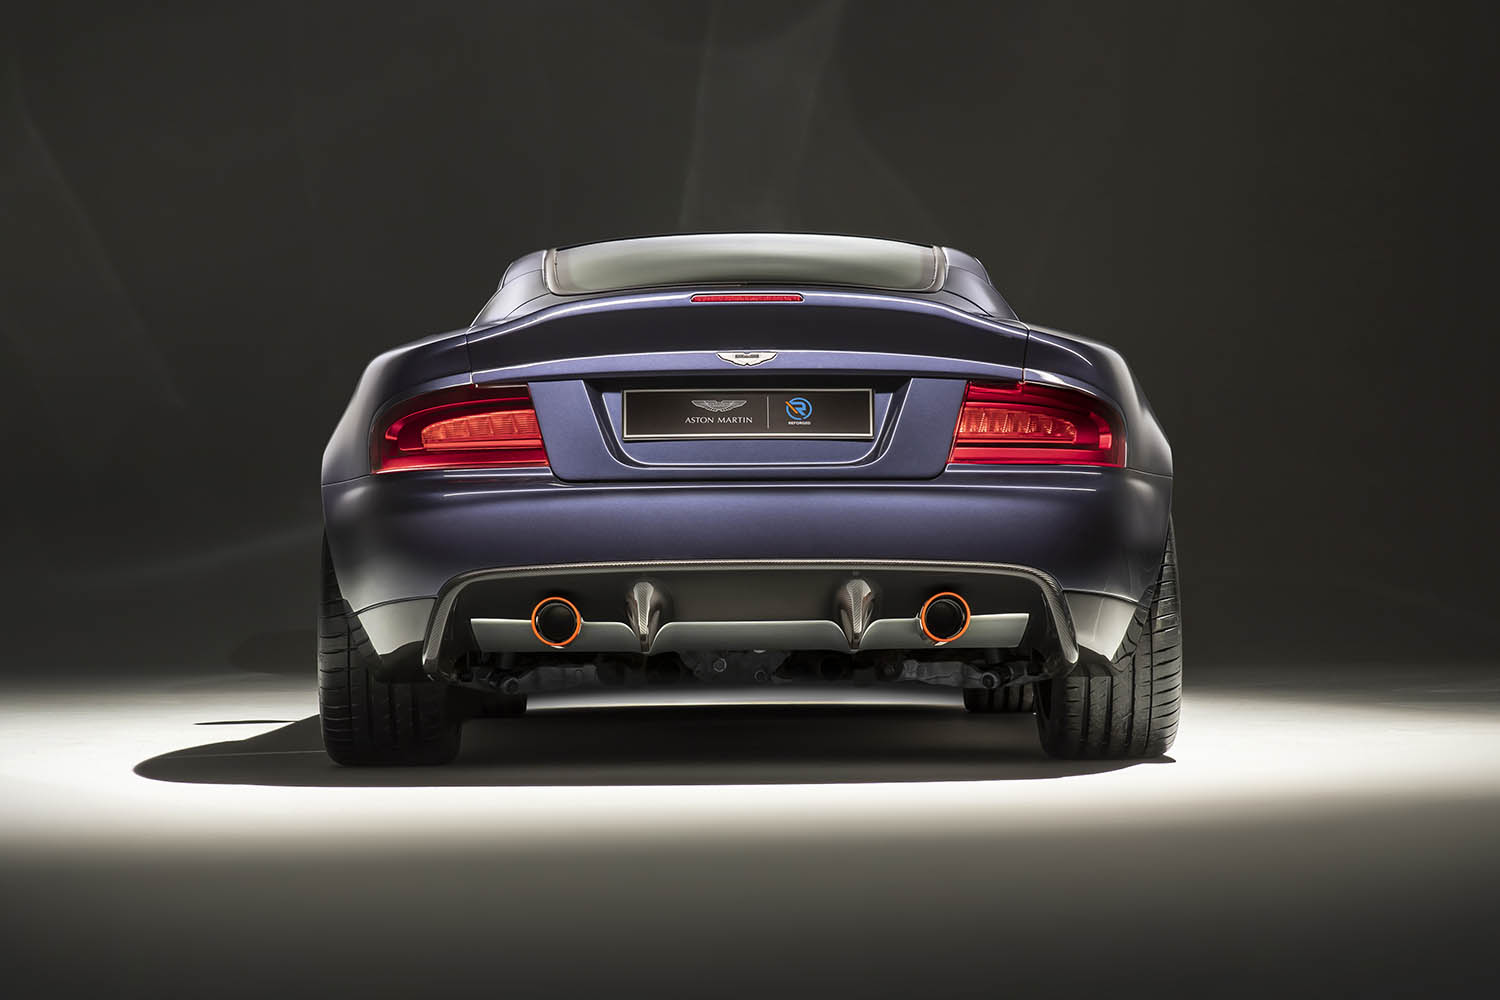 Aston Martin Vanquish 25 by CALLUM- rear view.jpg